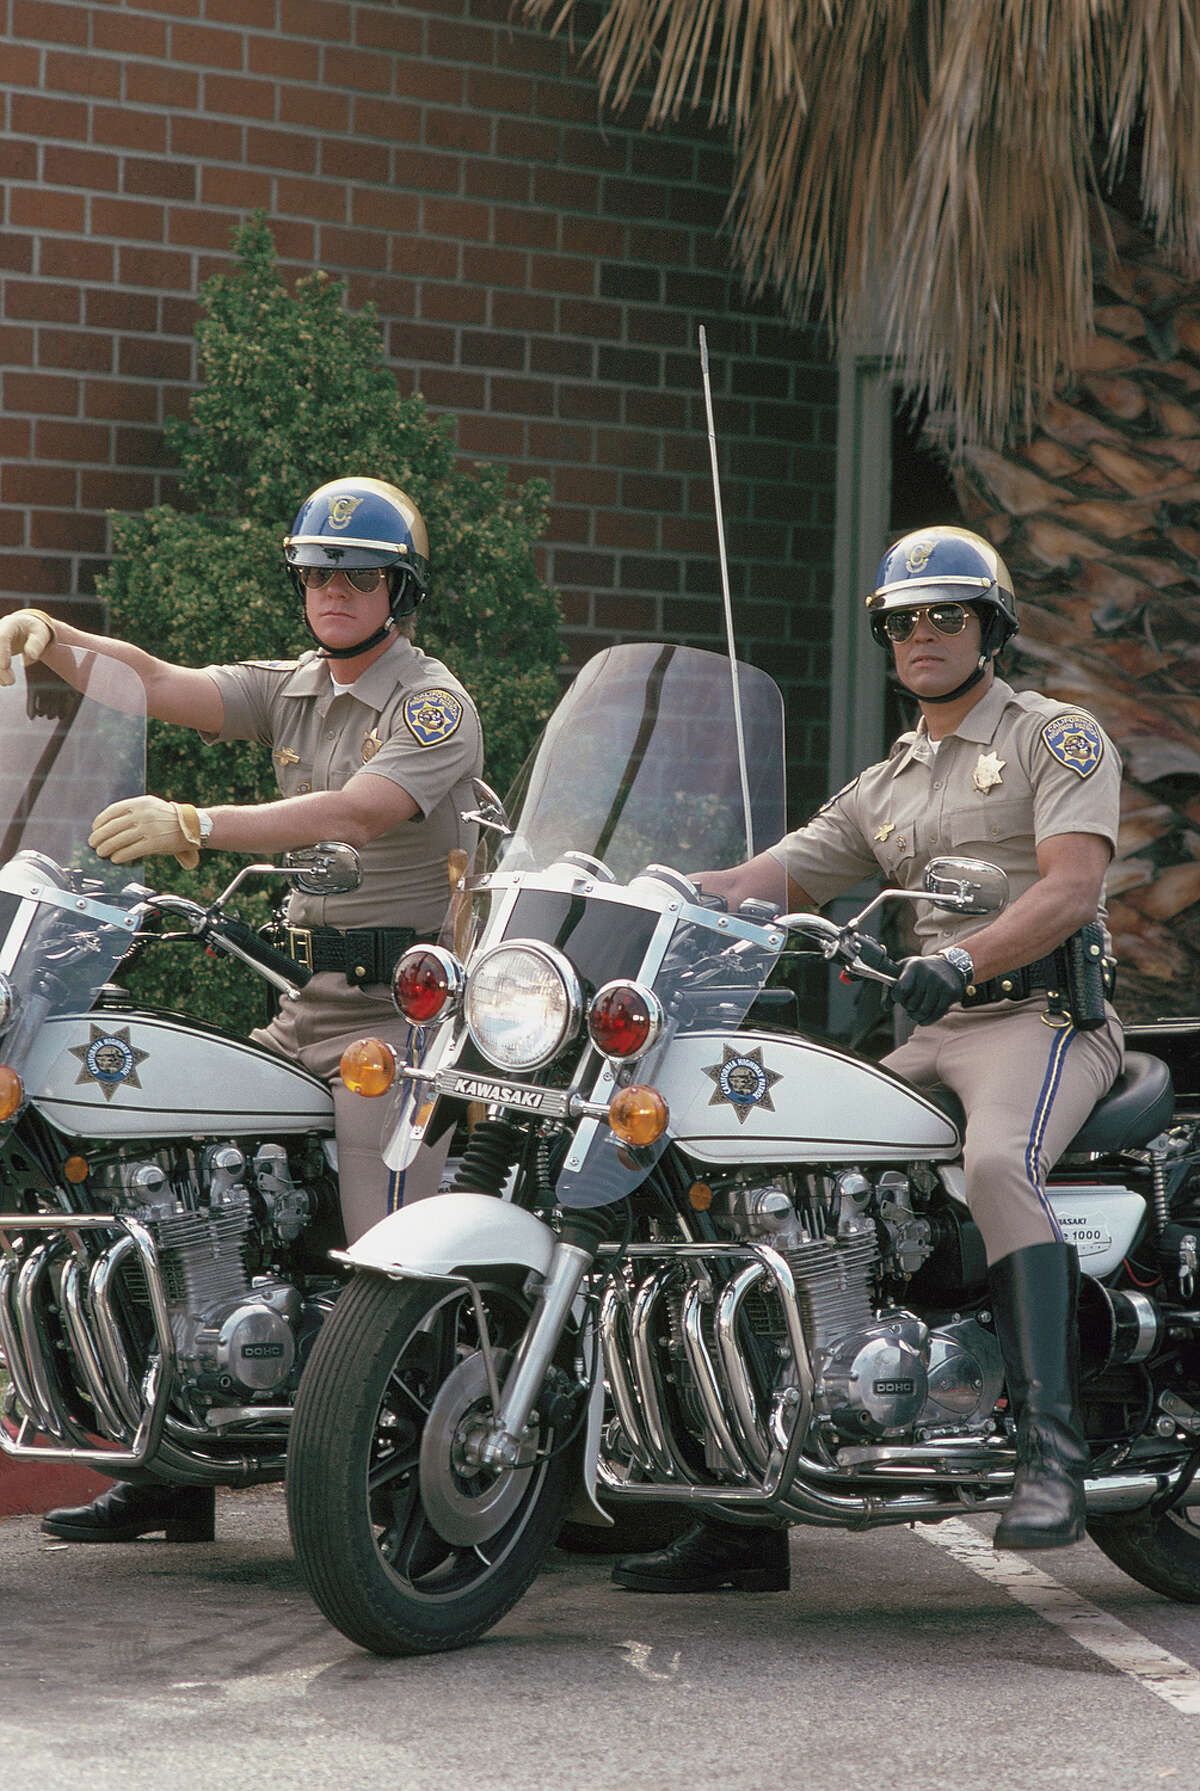 Ponch and Jon, aka 7-Mary-3 and 4, looked cool on their Yamaha KZ1000P bikes, which were used for years by the California Highway Patrol.Let's take a look at what other motorcycles are employed by departments from around the country to around the world.